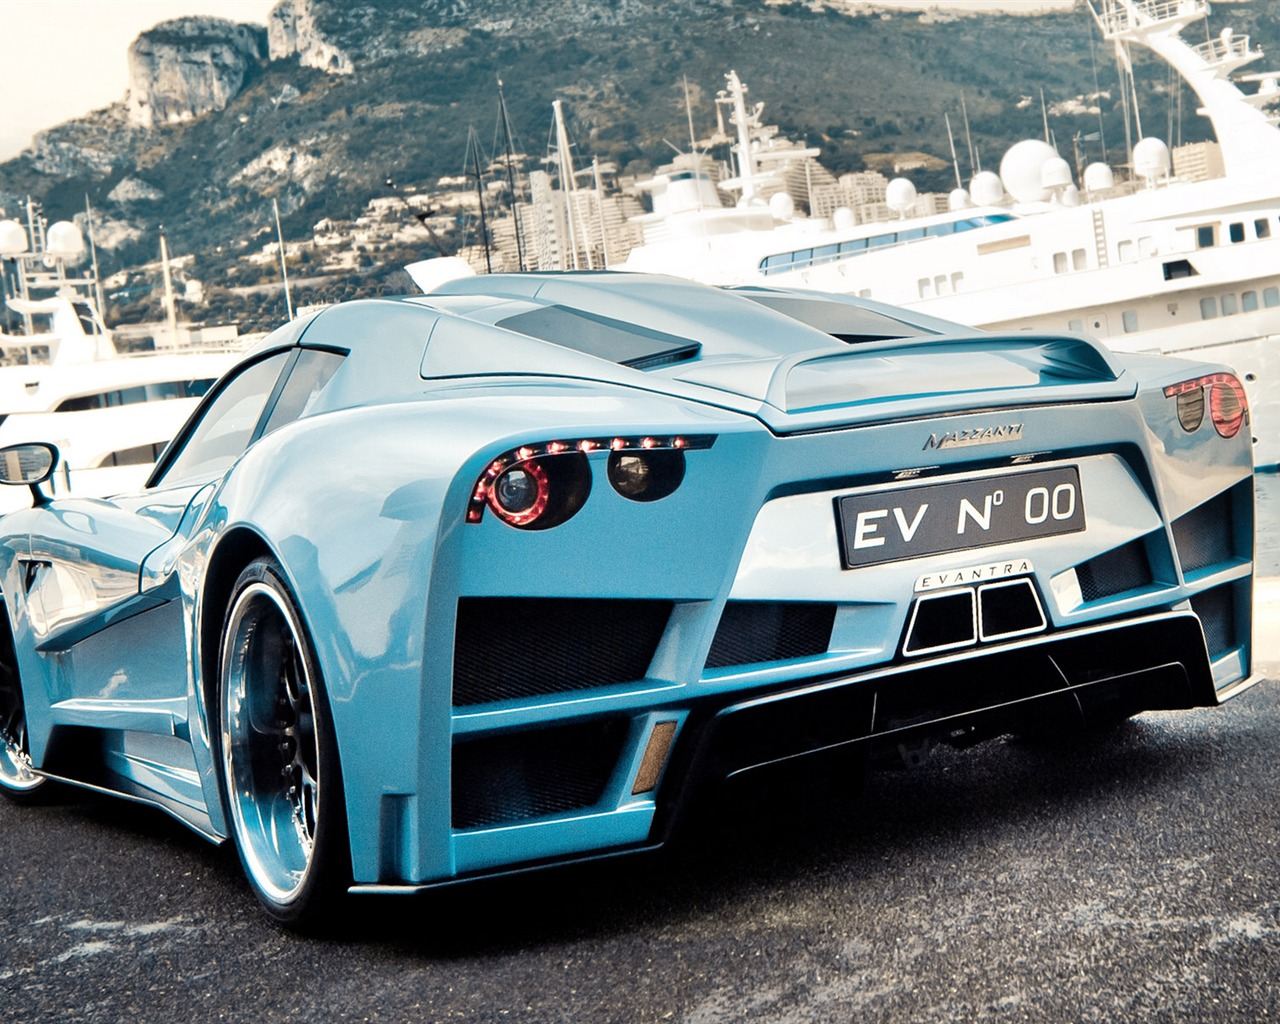 Mazzanti Evantra V8 Supercar HD Wallpaper 16 Current Size 1280 x 1024 1280x1024